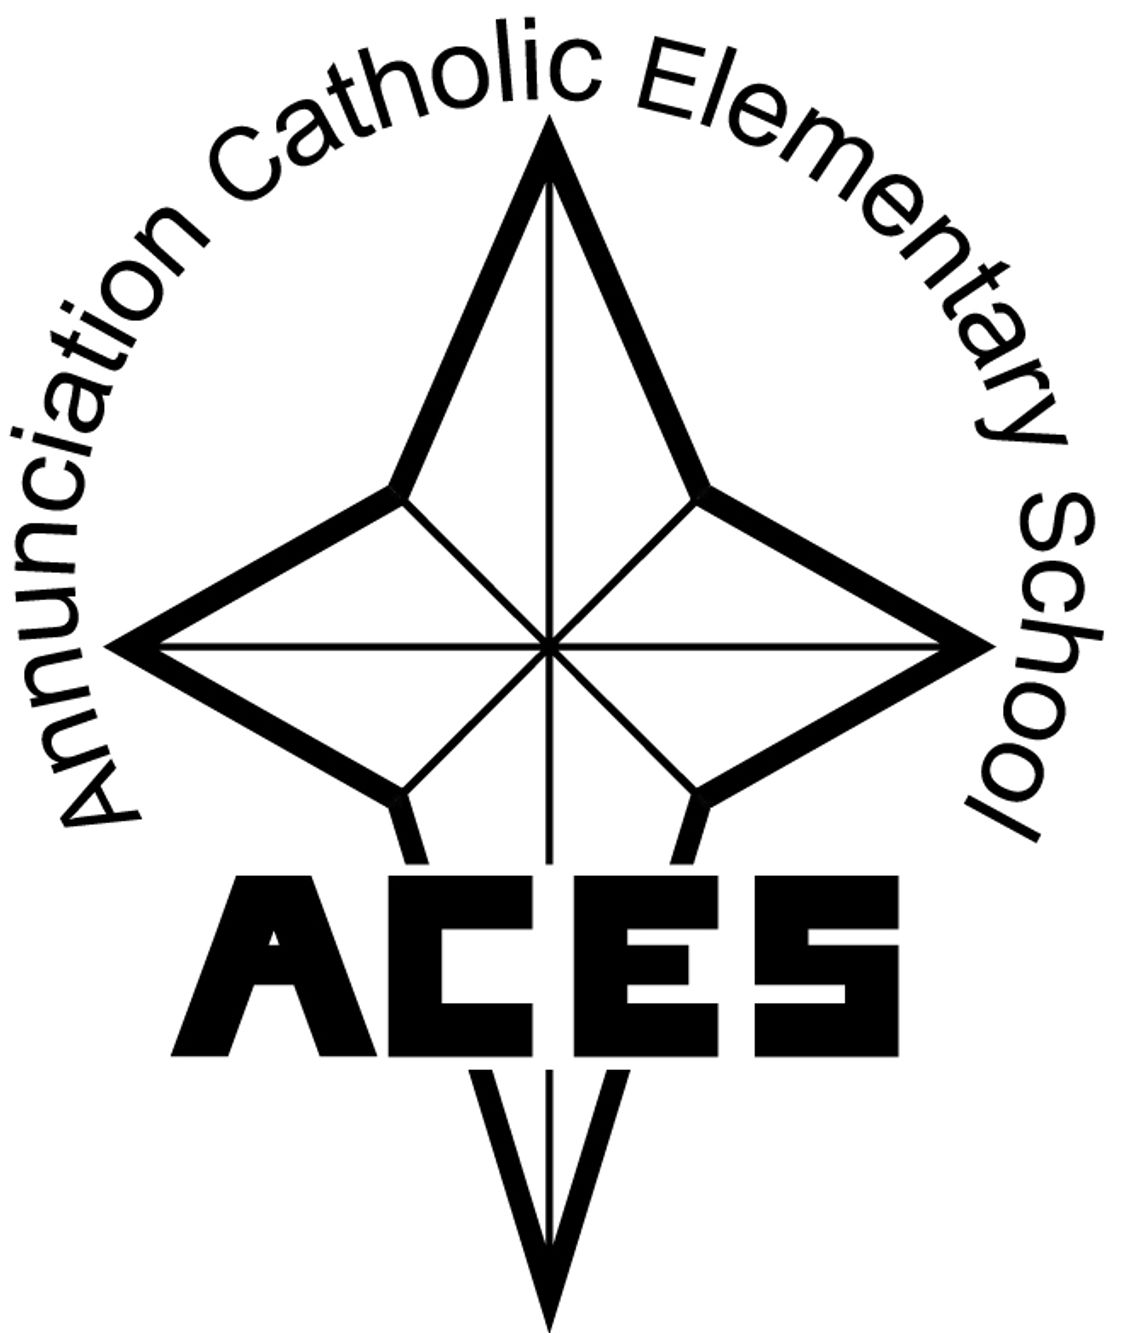 Annunciation Catholic Elementary School Profile (2020